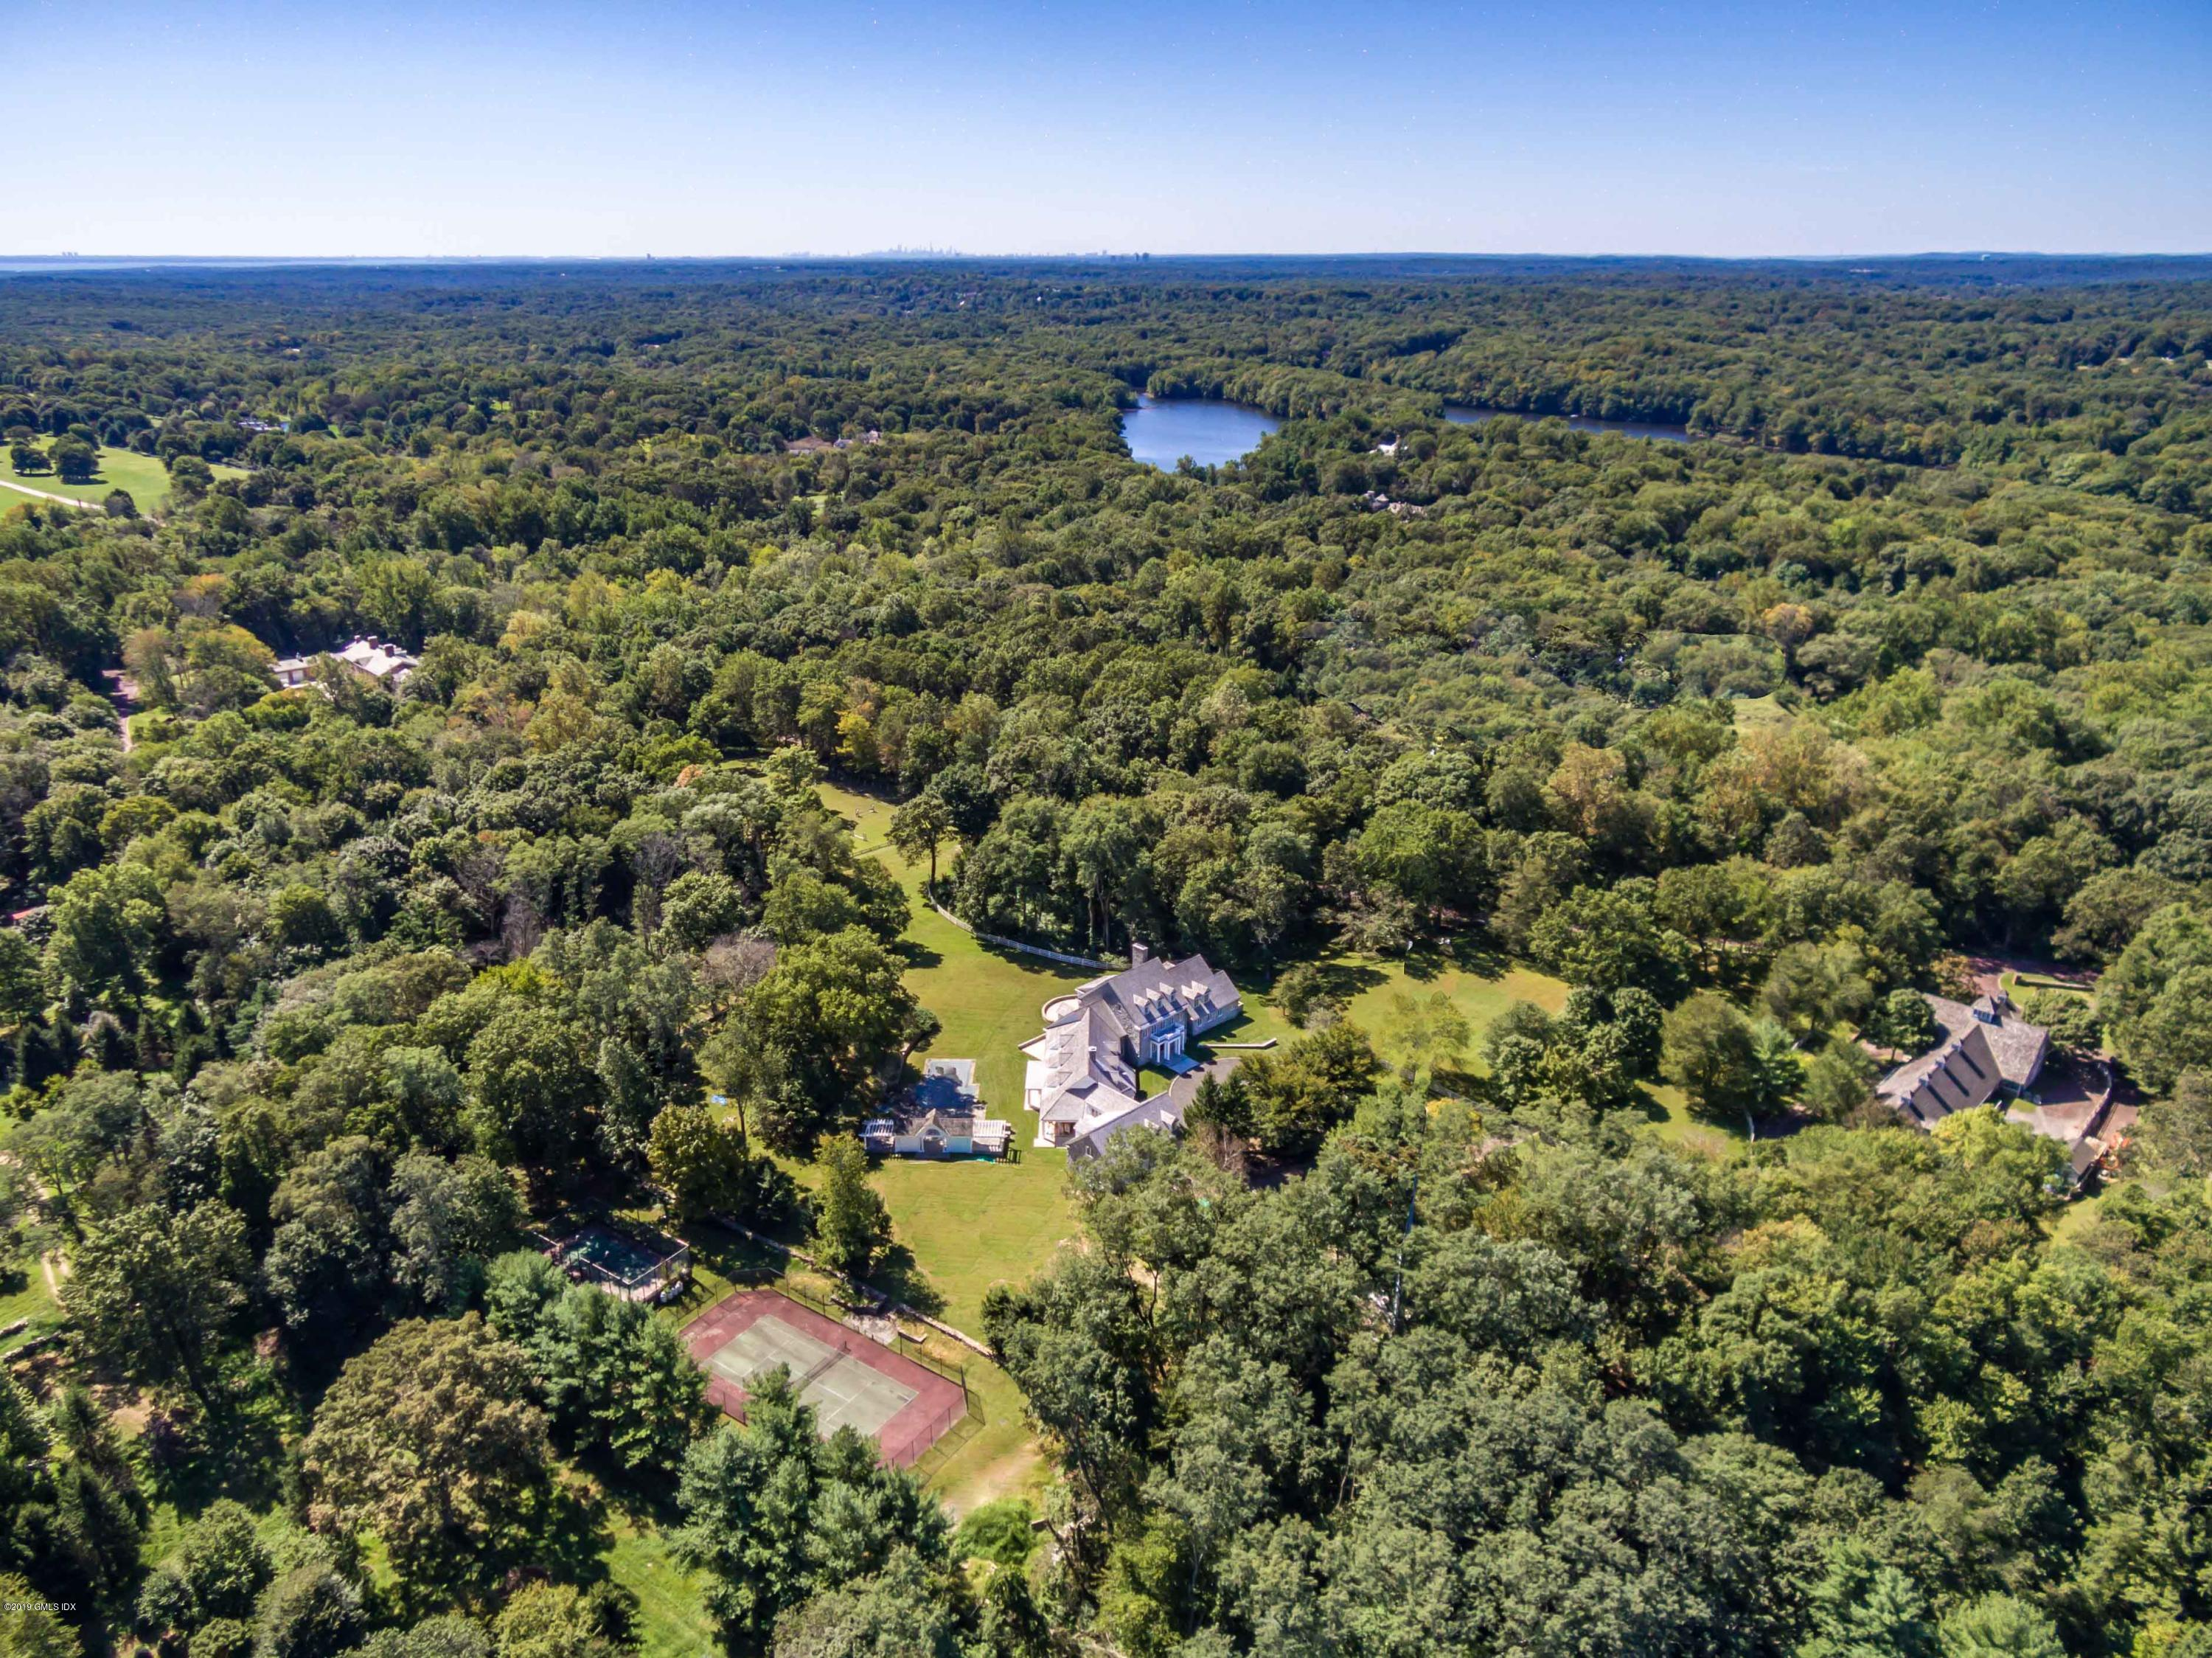 2 Cowdray Park Drive, Greenwich, Connecticut 06831, 7 Bedrooms Bedrooms, ,8 BathroomsBathrooms,Single family,For sale,Cowdray Park,101111